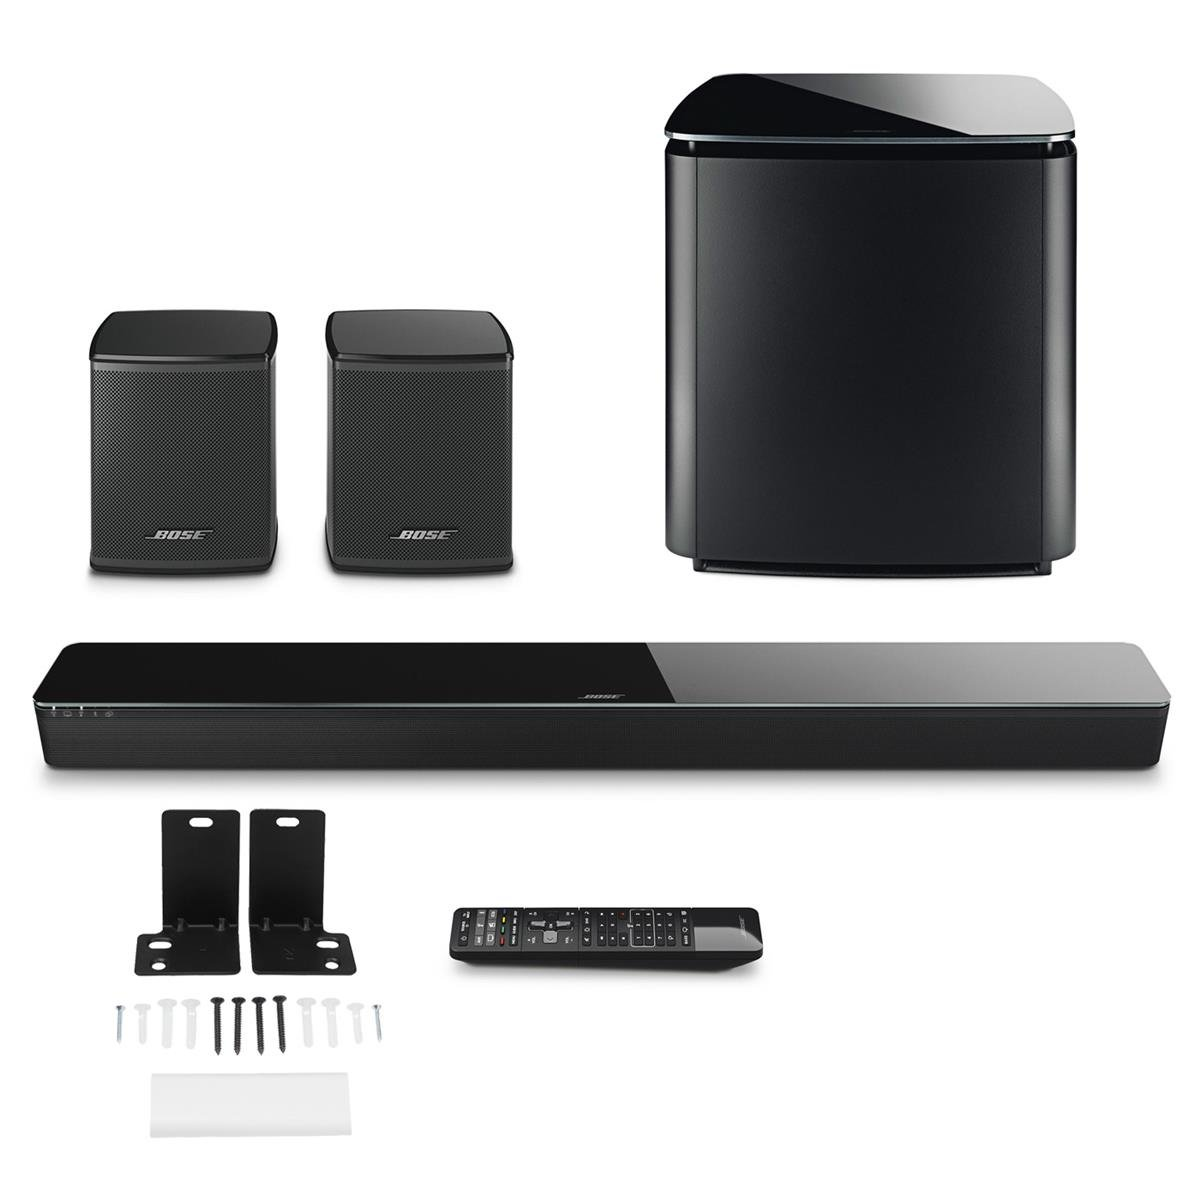 Bose SoundTouch 300 Soundbar w/ WB300 Wall Bracket & Wireless Acoustimass 300 Bass Module & Wireless Surround Speakers - Bundle by Bose